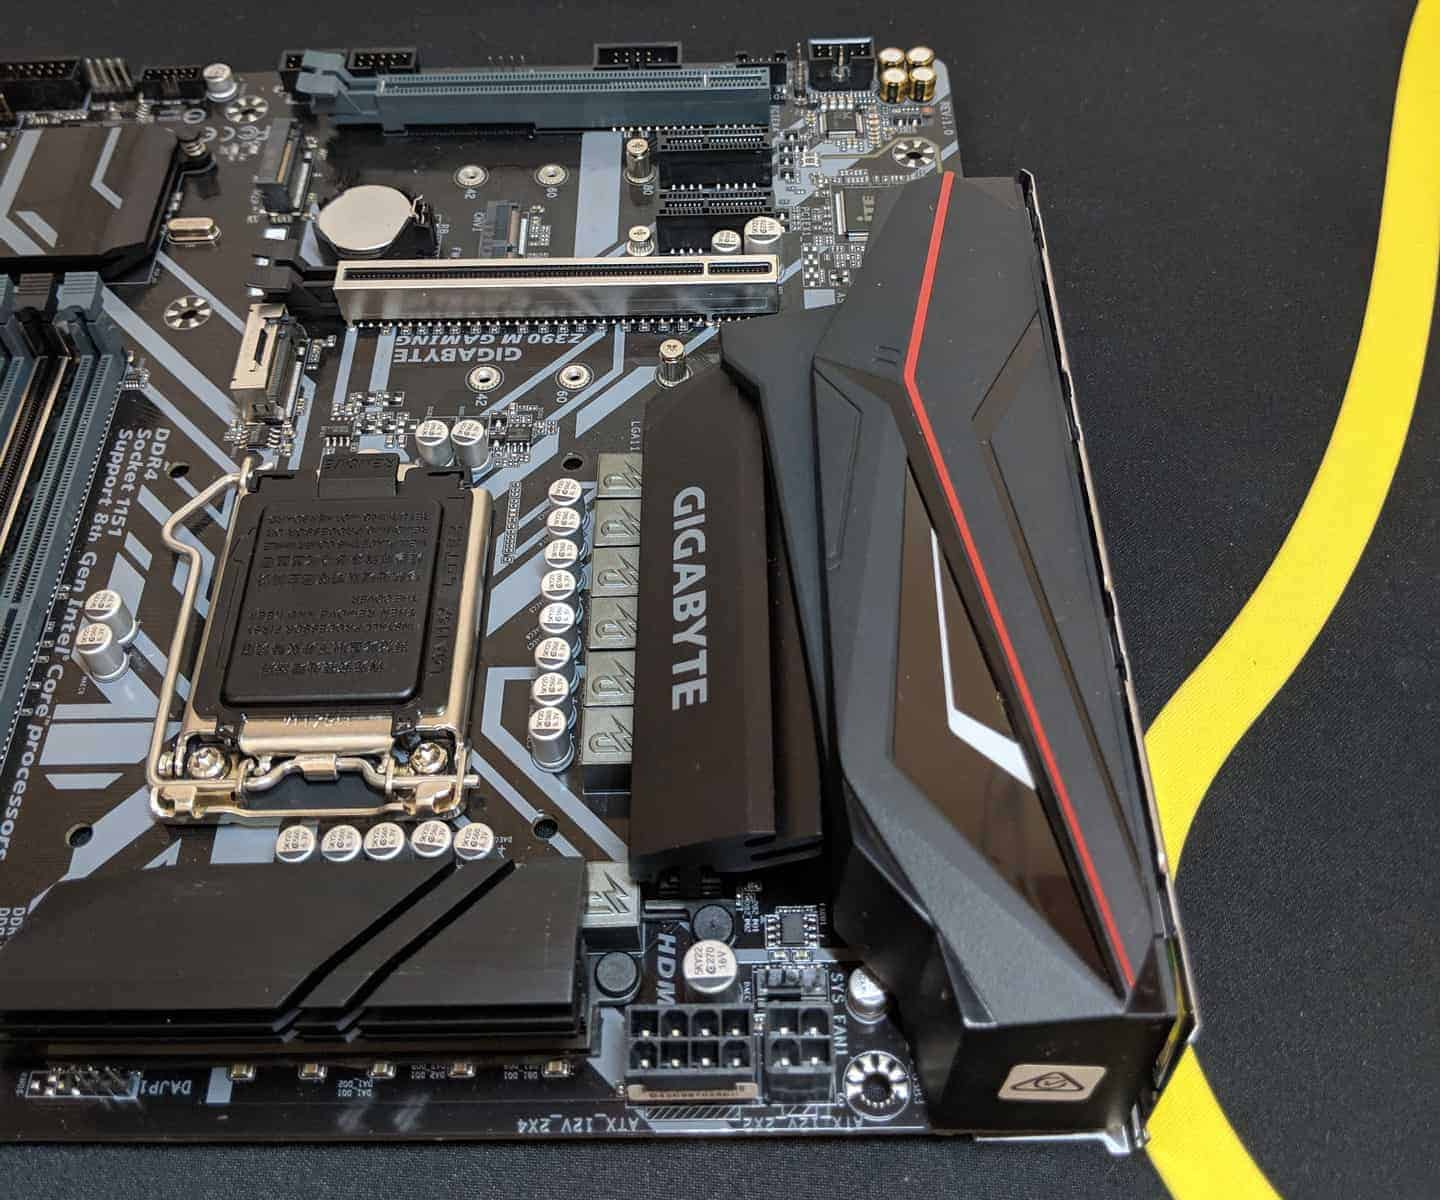 Gigabyte Z390 M Gaming Motherboard Review - The Streaming Blog